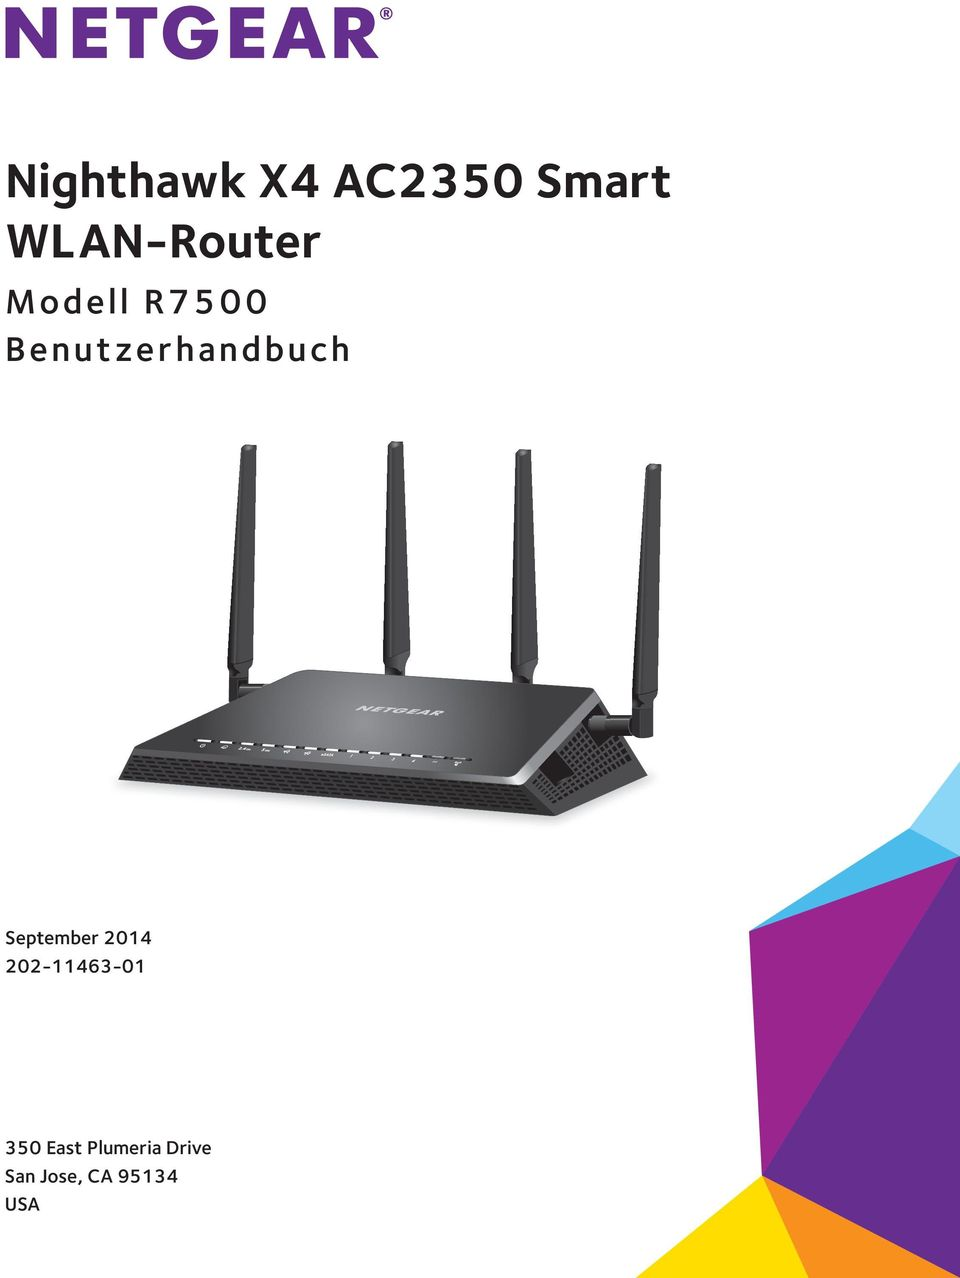 Nighthawk X4 AC2350 Smart WLAN-Router - PDF